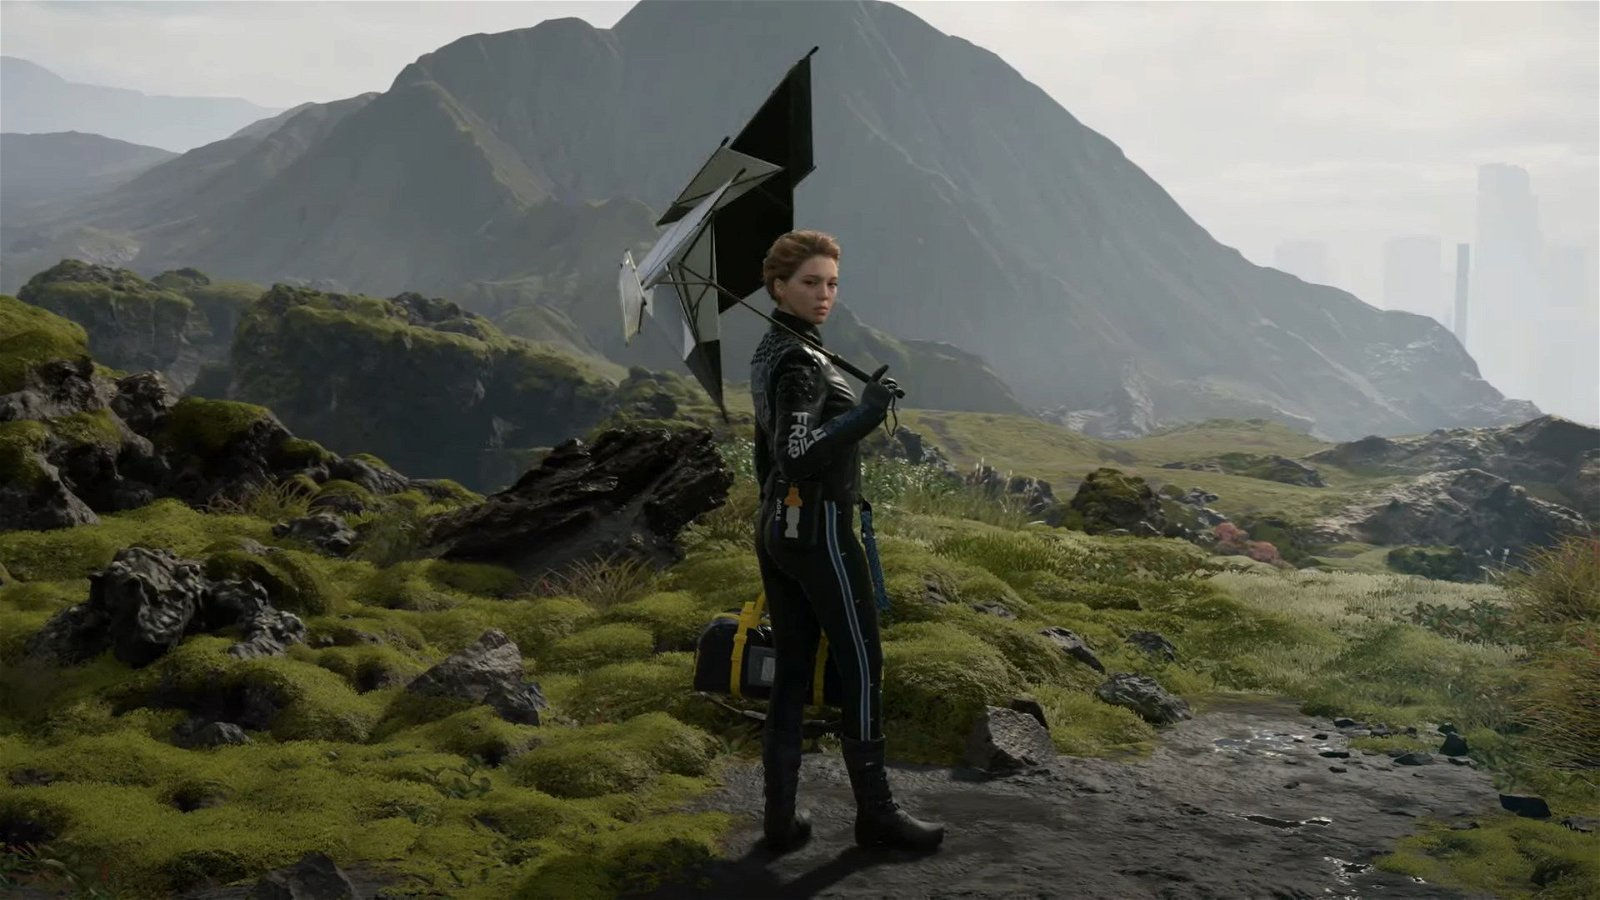 Death Stranding: Director's Cut Trailer Shown at State of Play 2